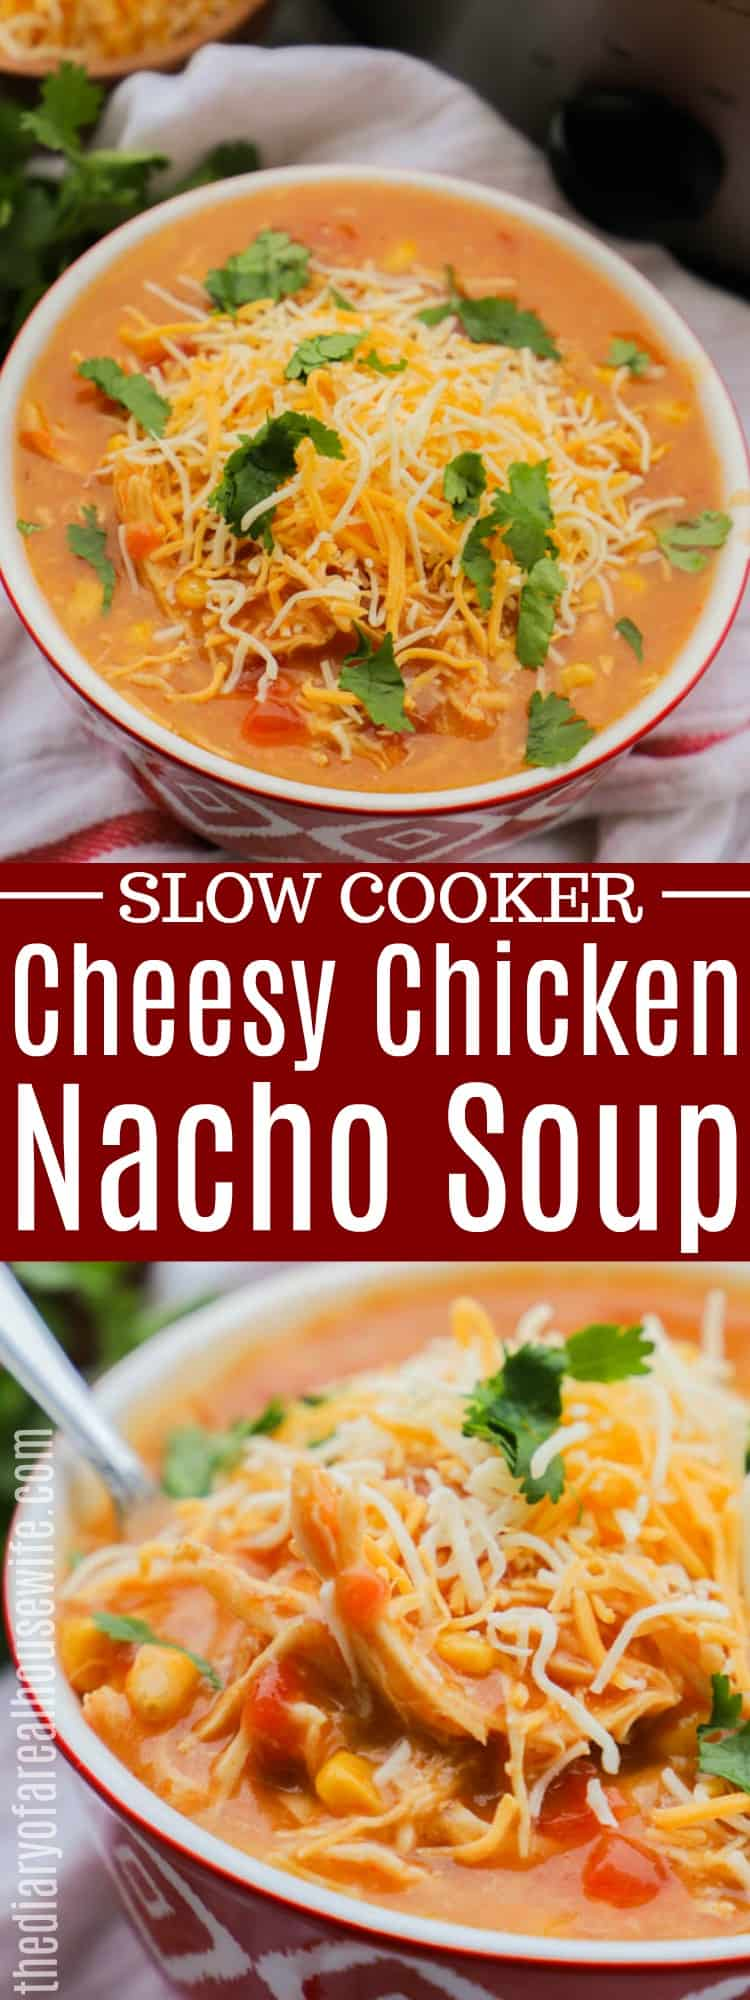 Cheesy Chicken Nacho Soup